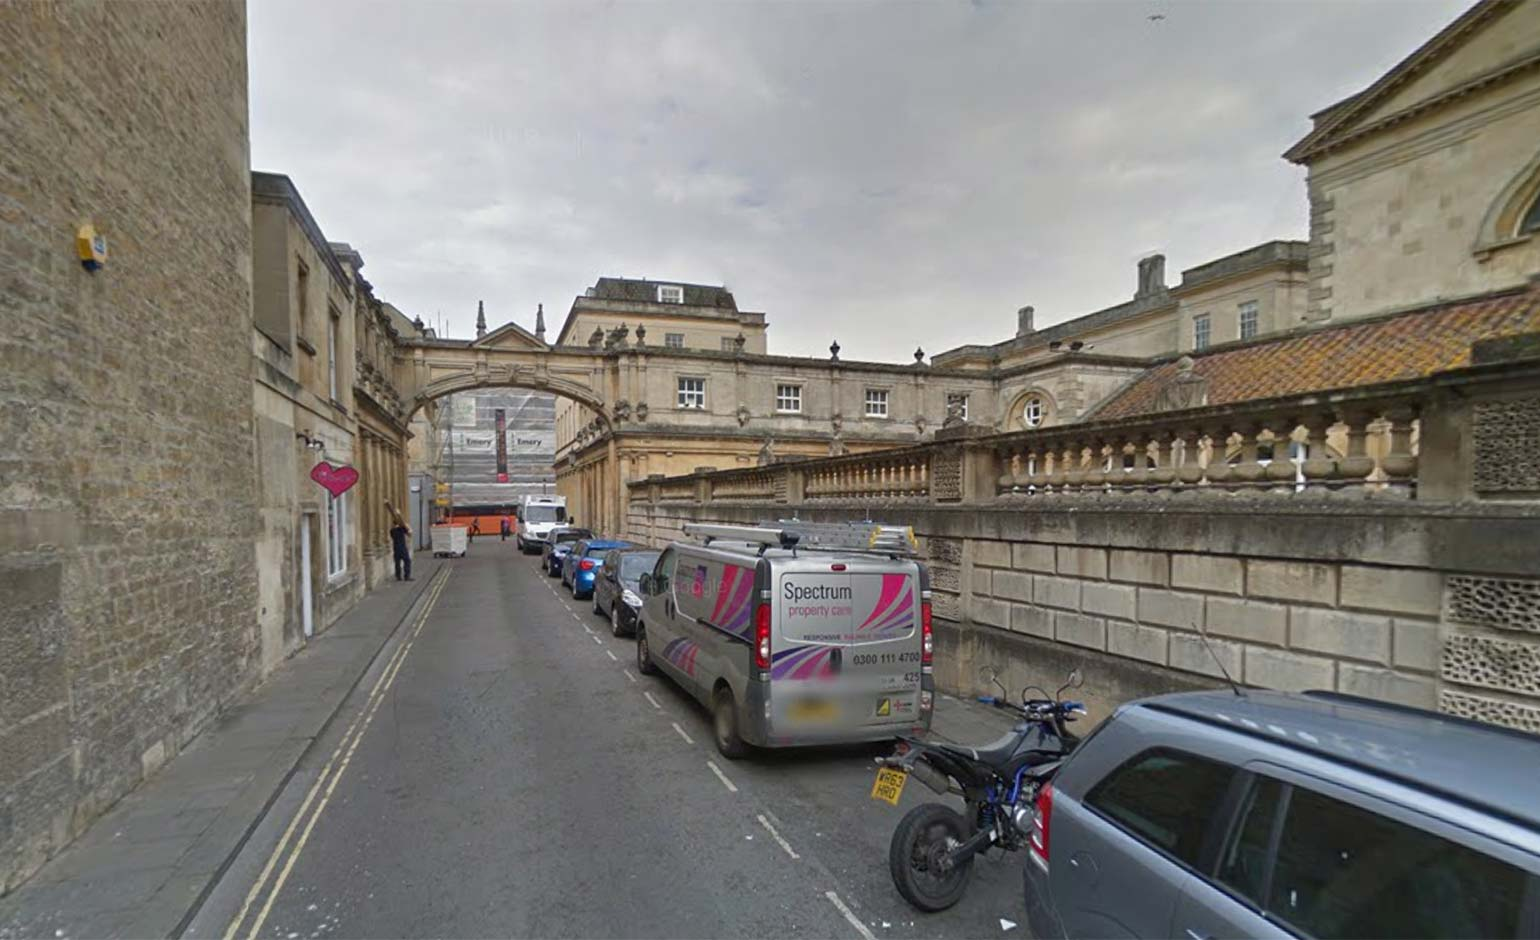 York Street In Bath To Be Closed For Up To 8 10 Weeks For